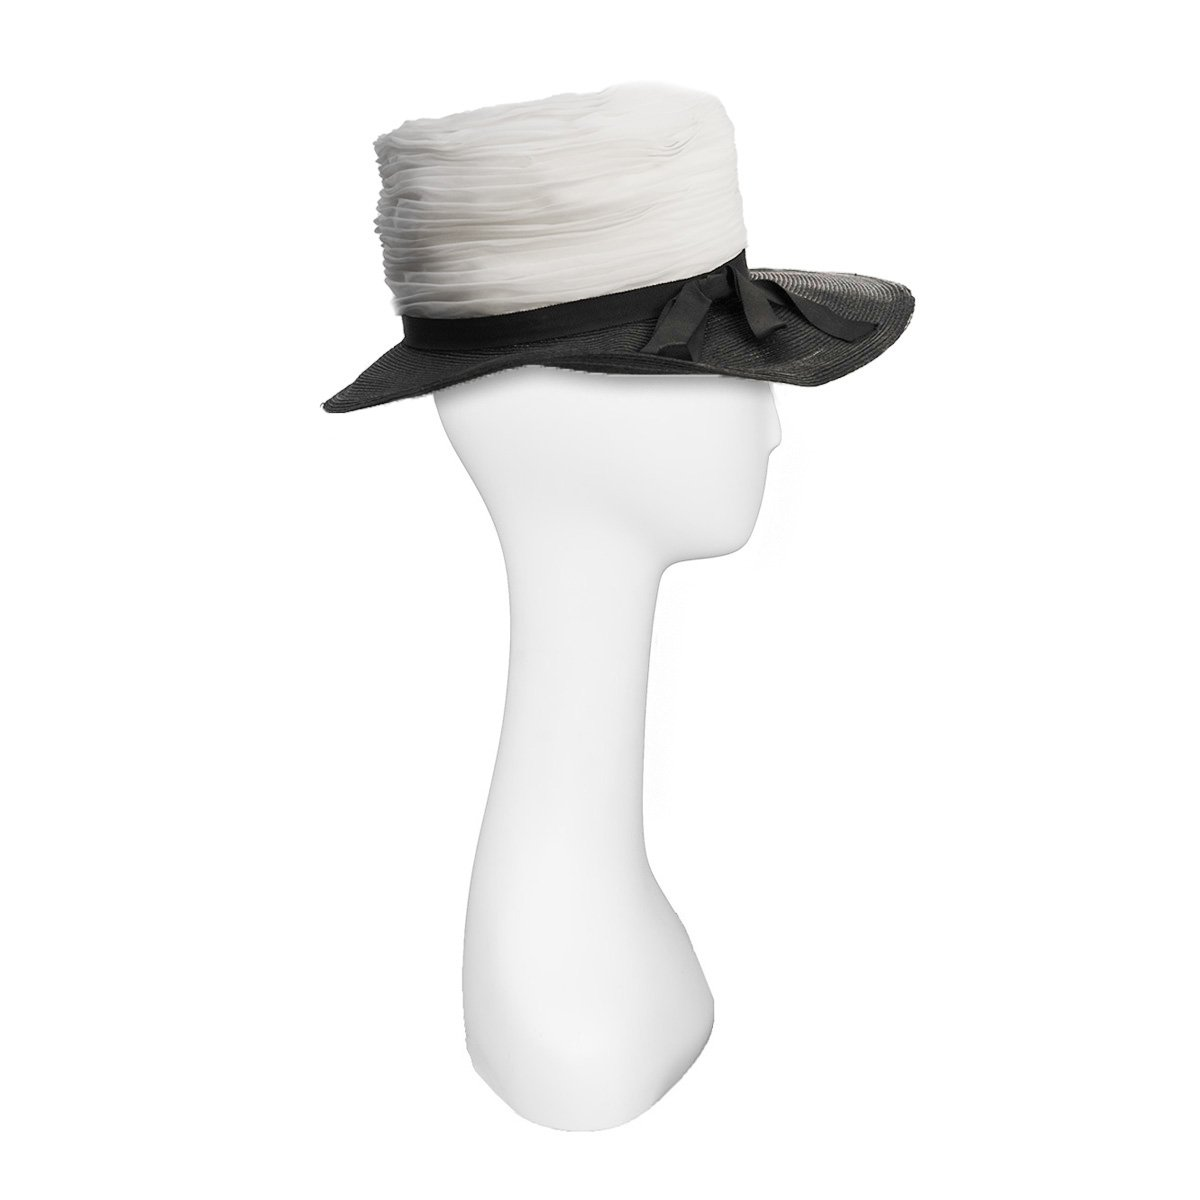 Straw and Silk Chiffon Hat in Black & White 3